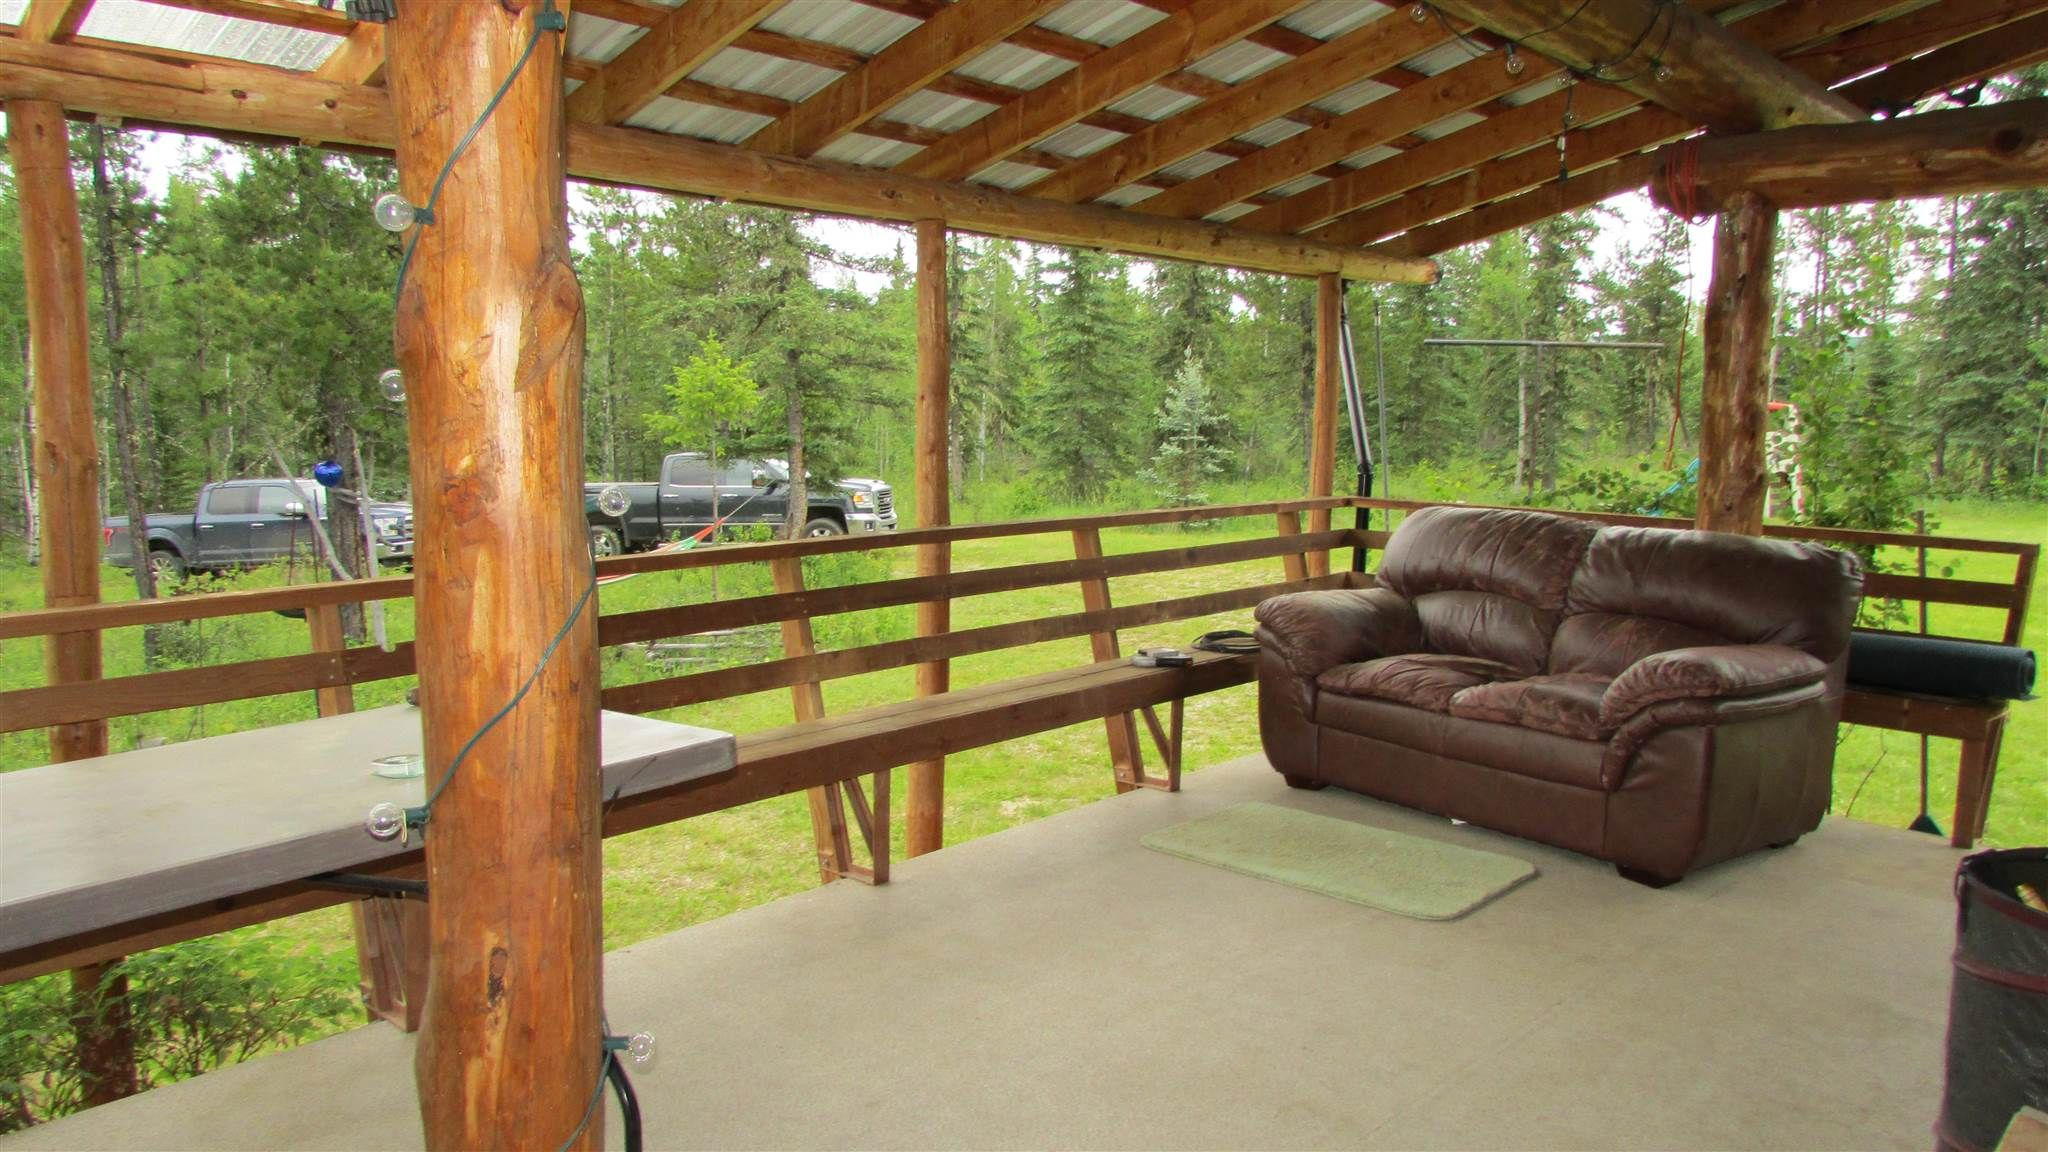 """Photo 15: Photos: 4663 RESCHKE Road: Hudsons Hope House for sale in """"LYNX CREEK SUBDIVISION"""" (Fort St. John (Zone 60))  : MLS®# R2594975"""